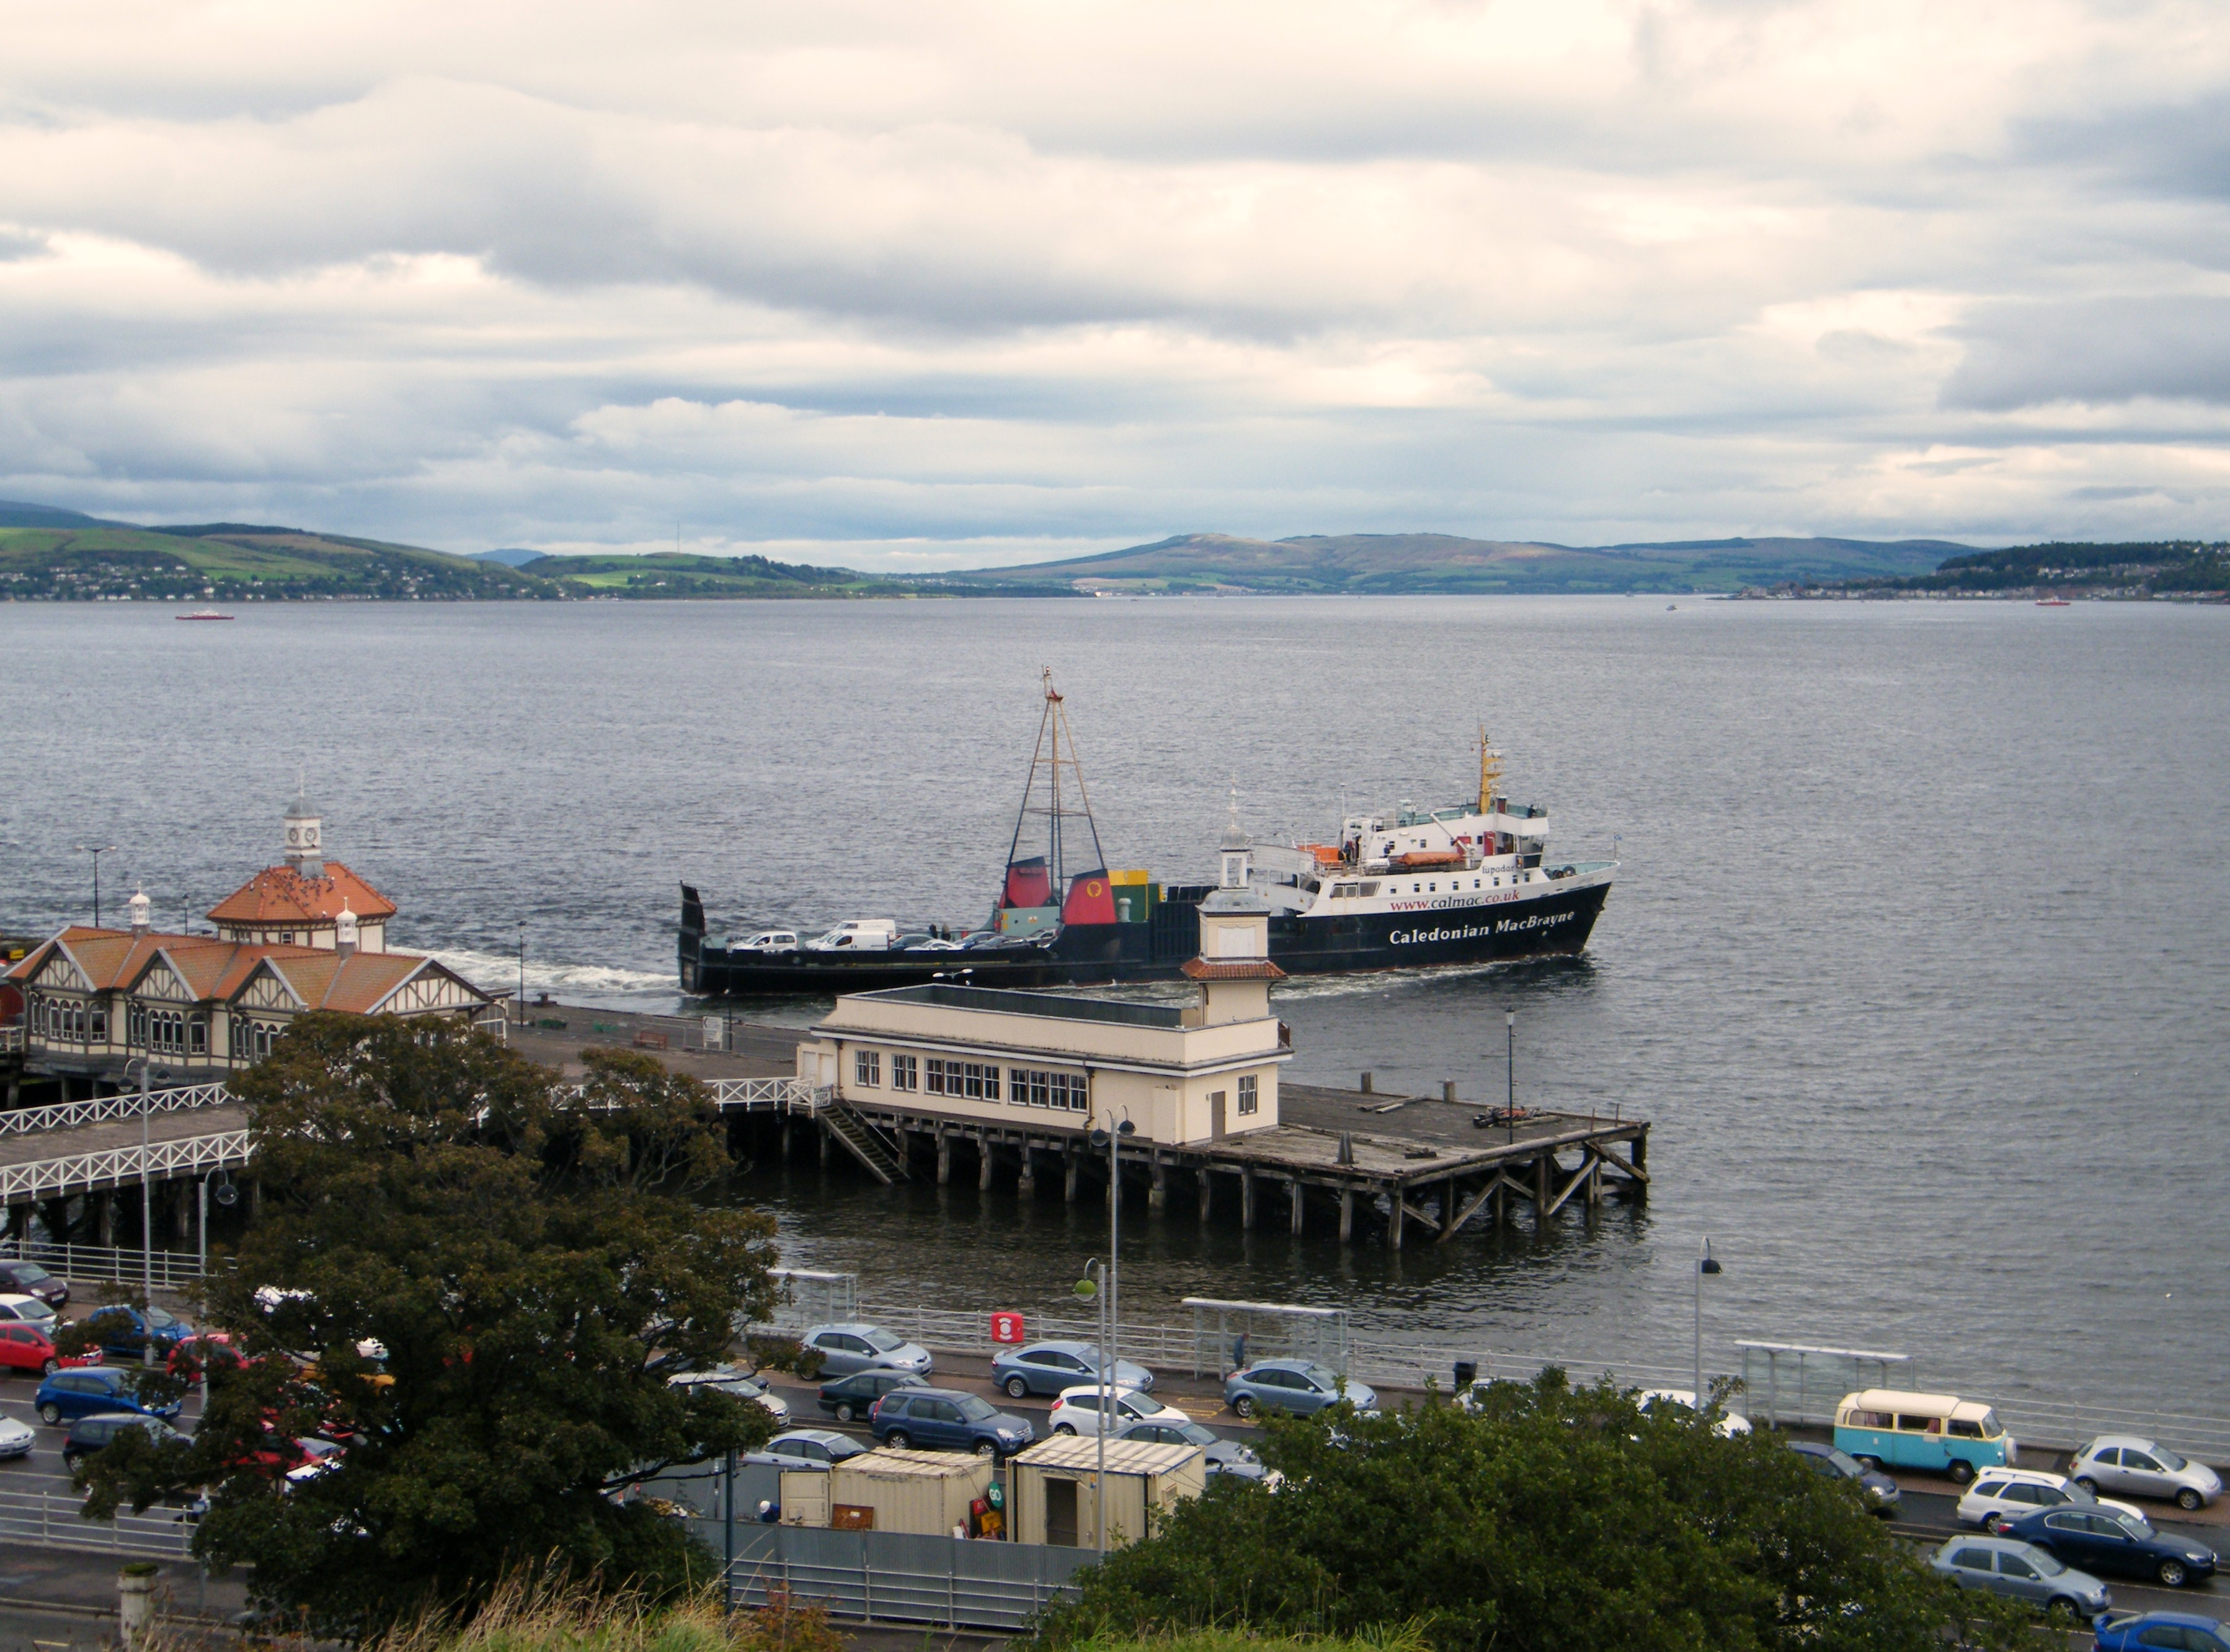 Jupiter leaving Dunoon (Ships of CalMac)